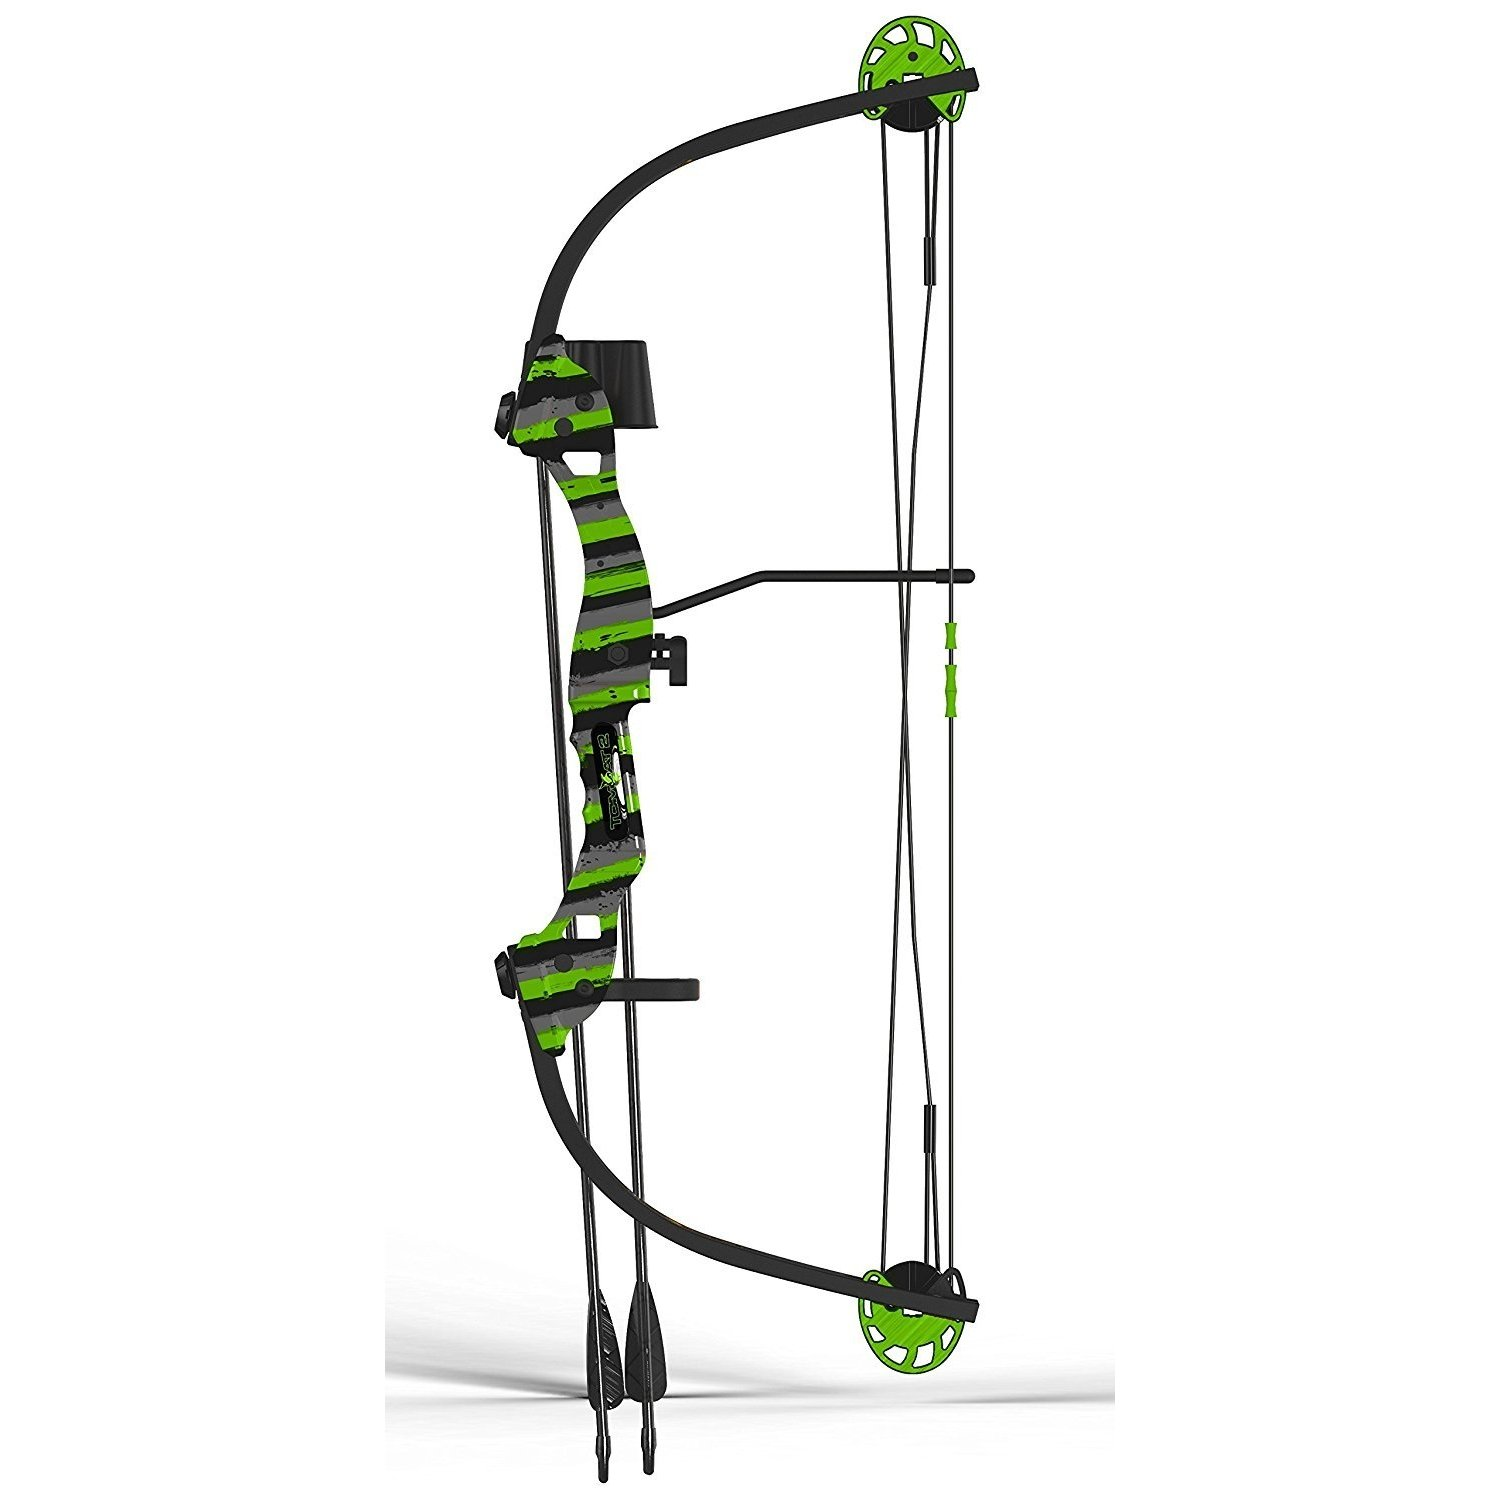 By-Arnett Kids Compound Bow, Tomcat-2 Youth Set Girls Compound Bow For Kids, Green